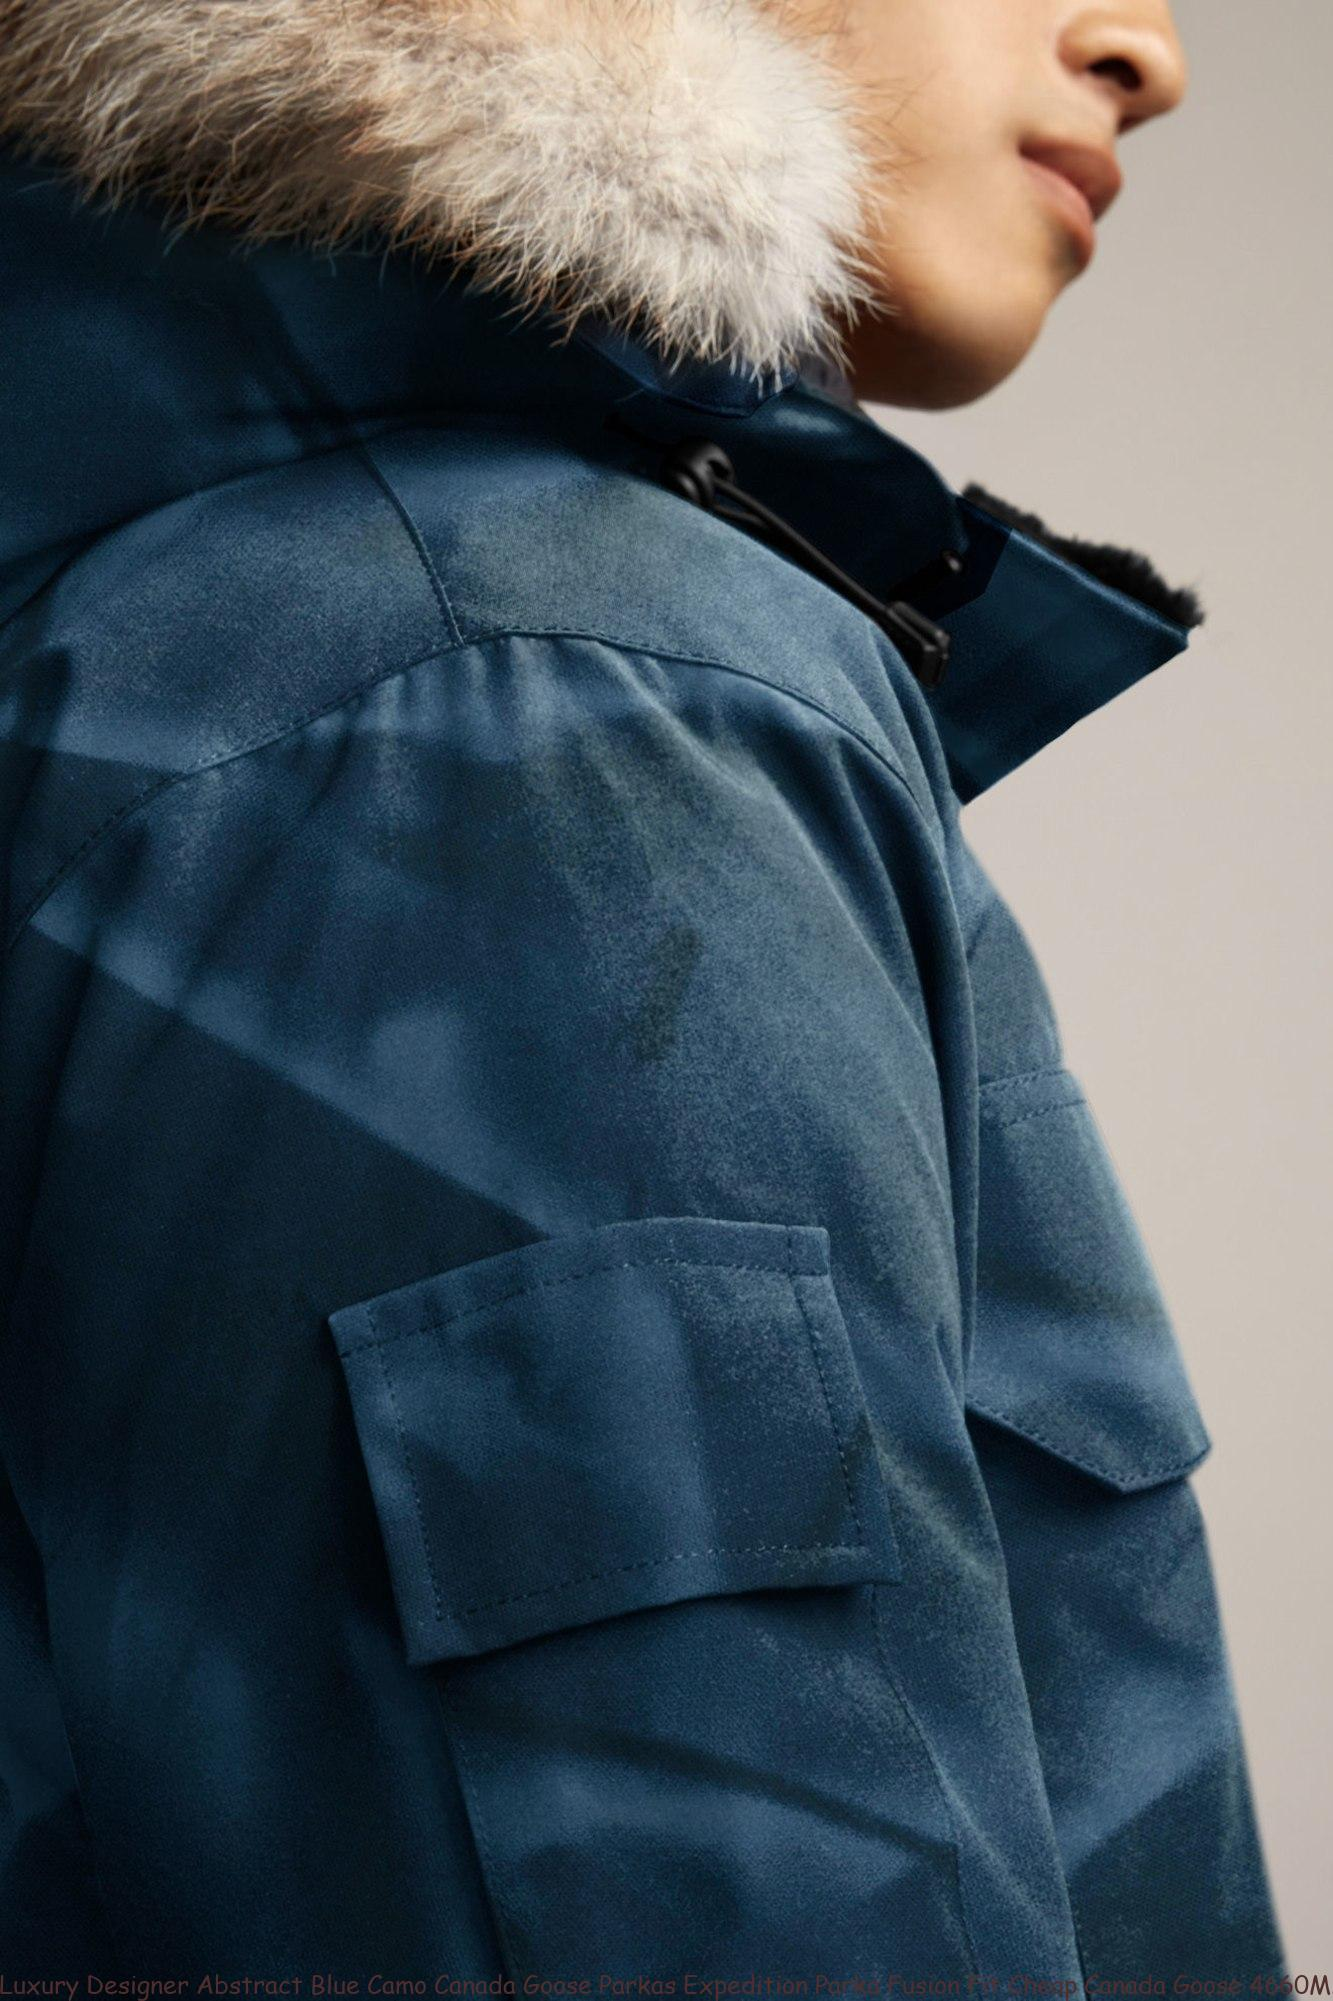 21124892c Luxury Designer Abstract Blue Camo Canada Goose Parkas Expedition Parka  Fusion Fit Cheap Canada Goose 4660MA